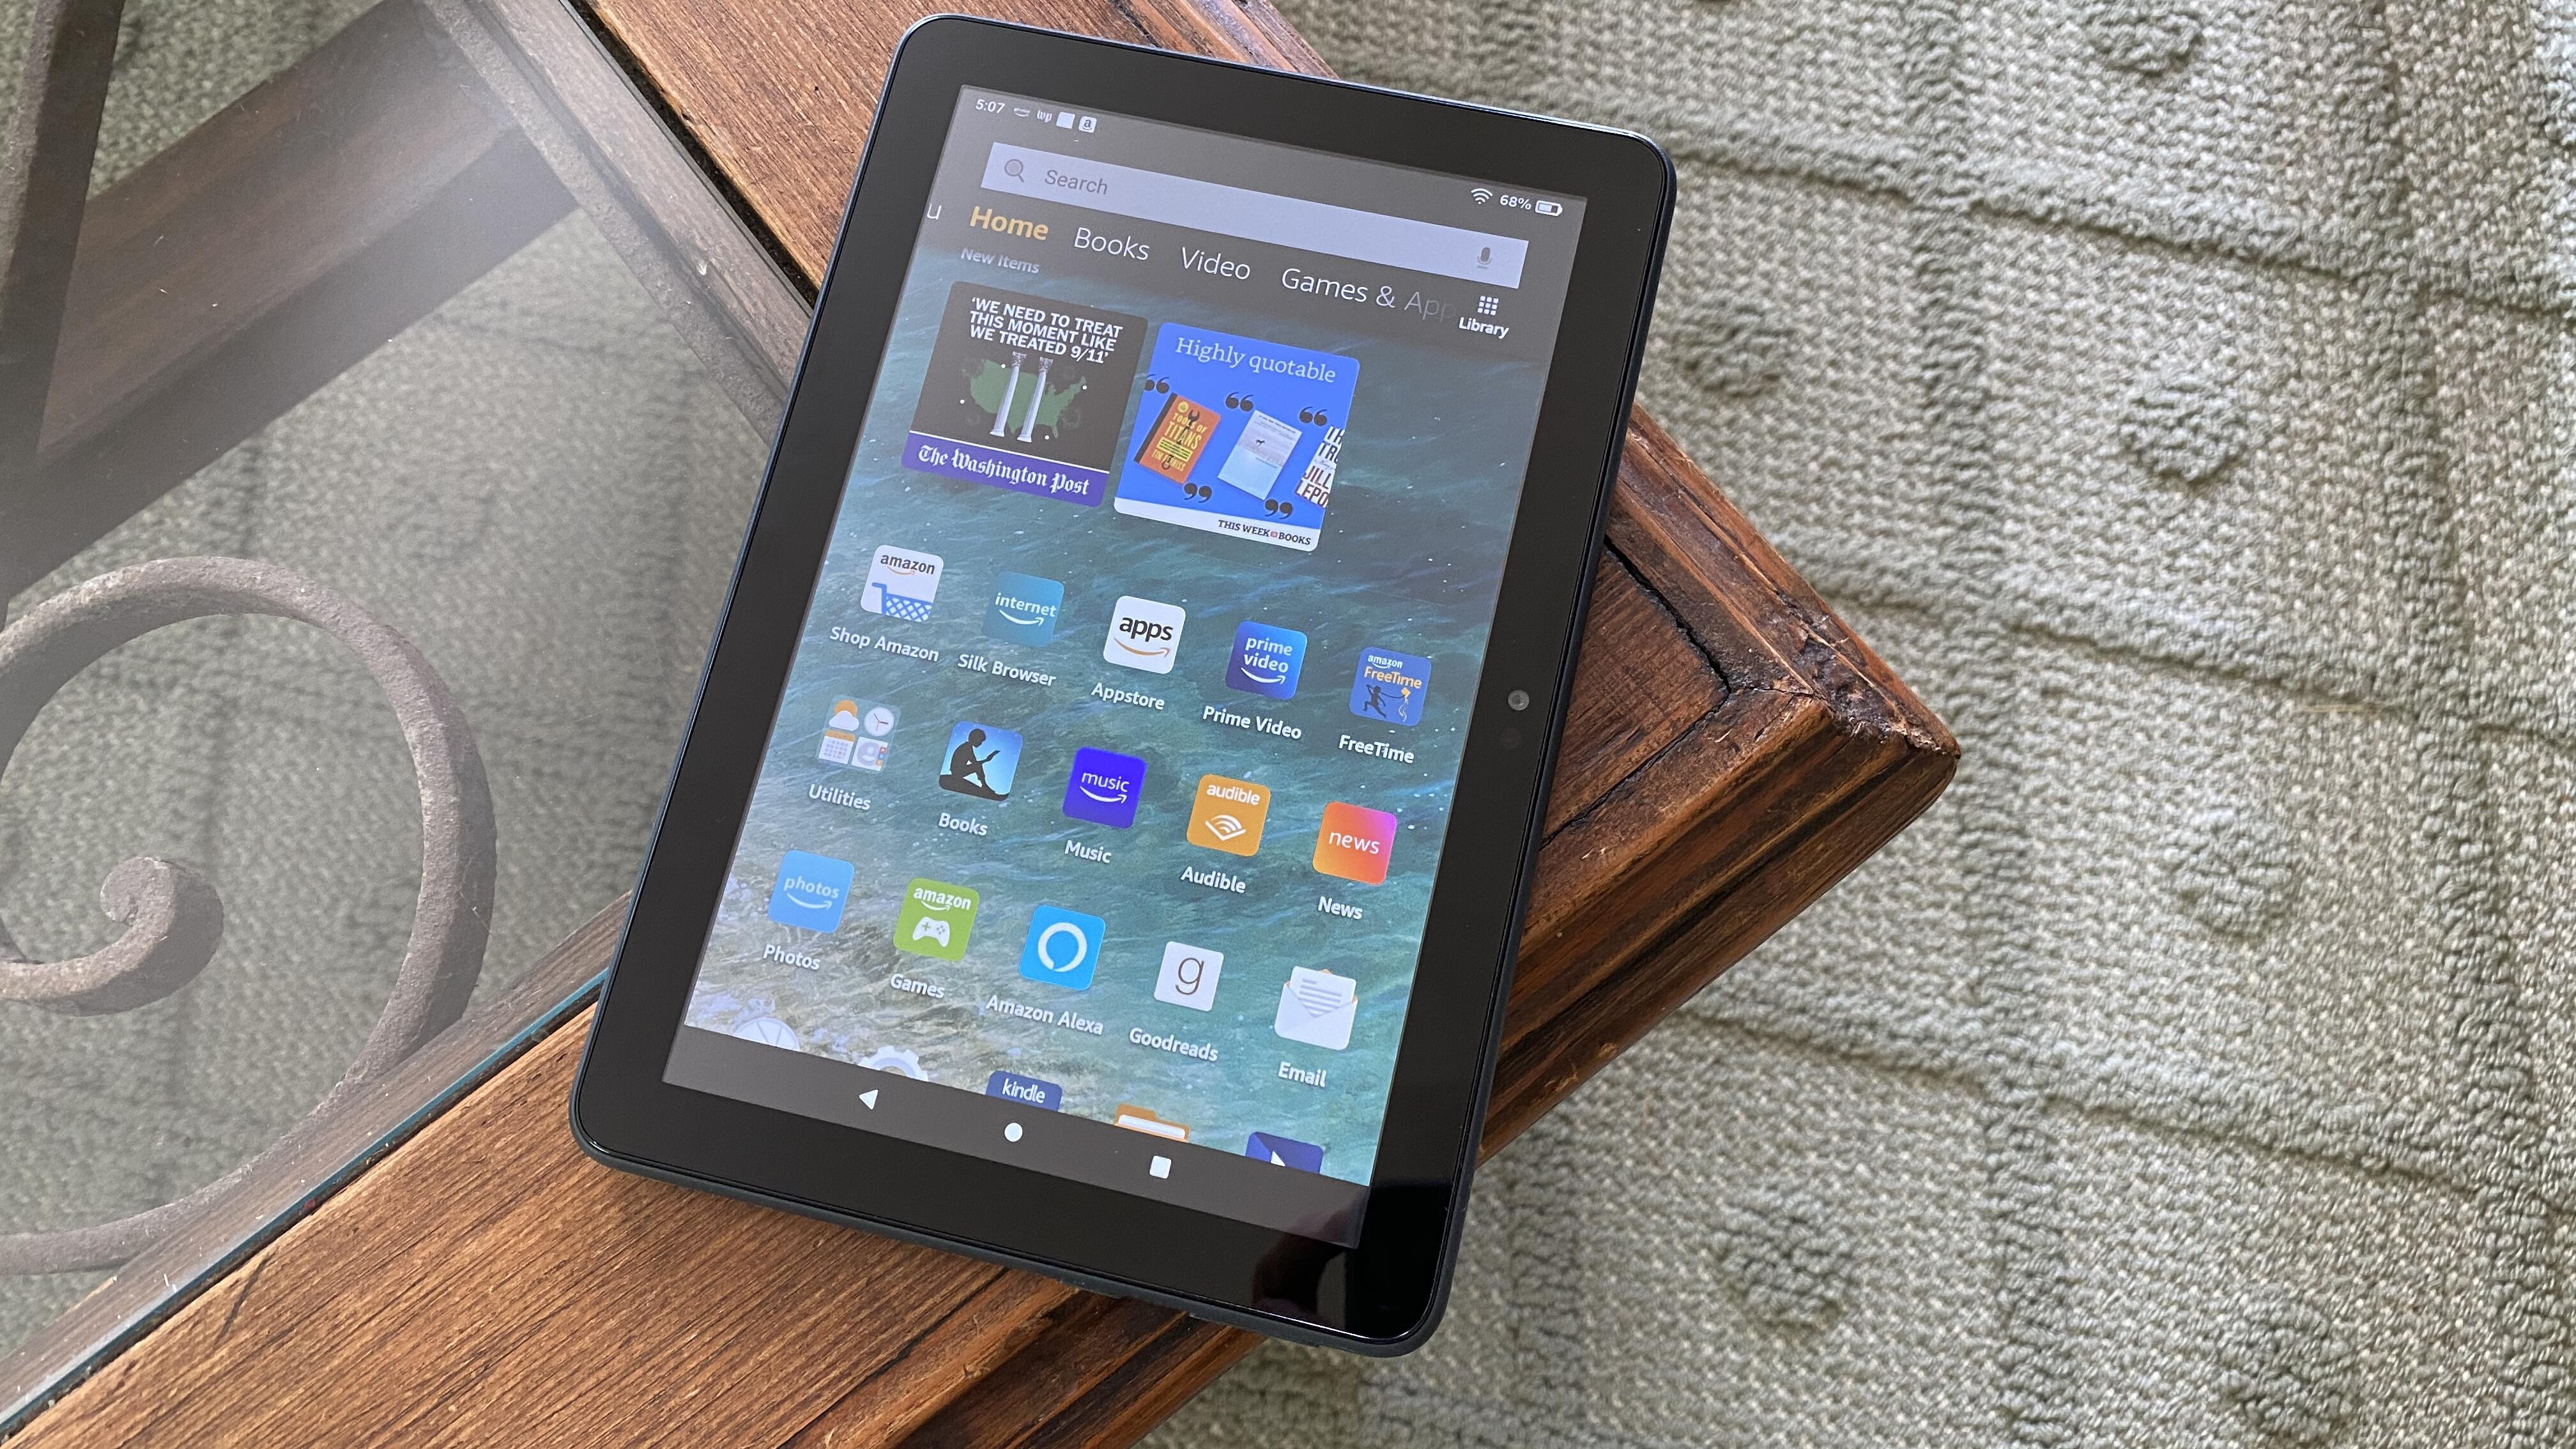 Fire Hd 8 2020 Review Higher, Can Kindle Fire Hd 8 Screen Mirror